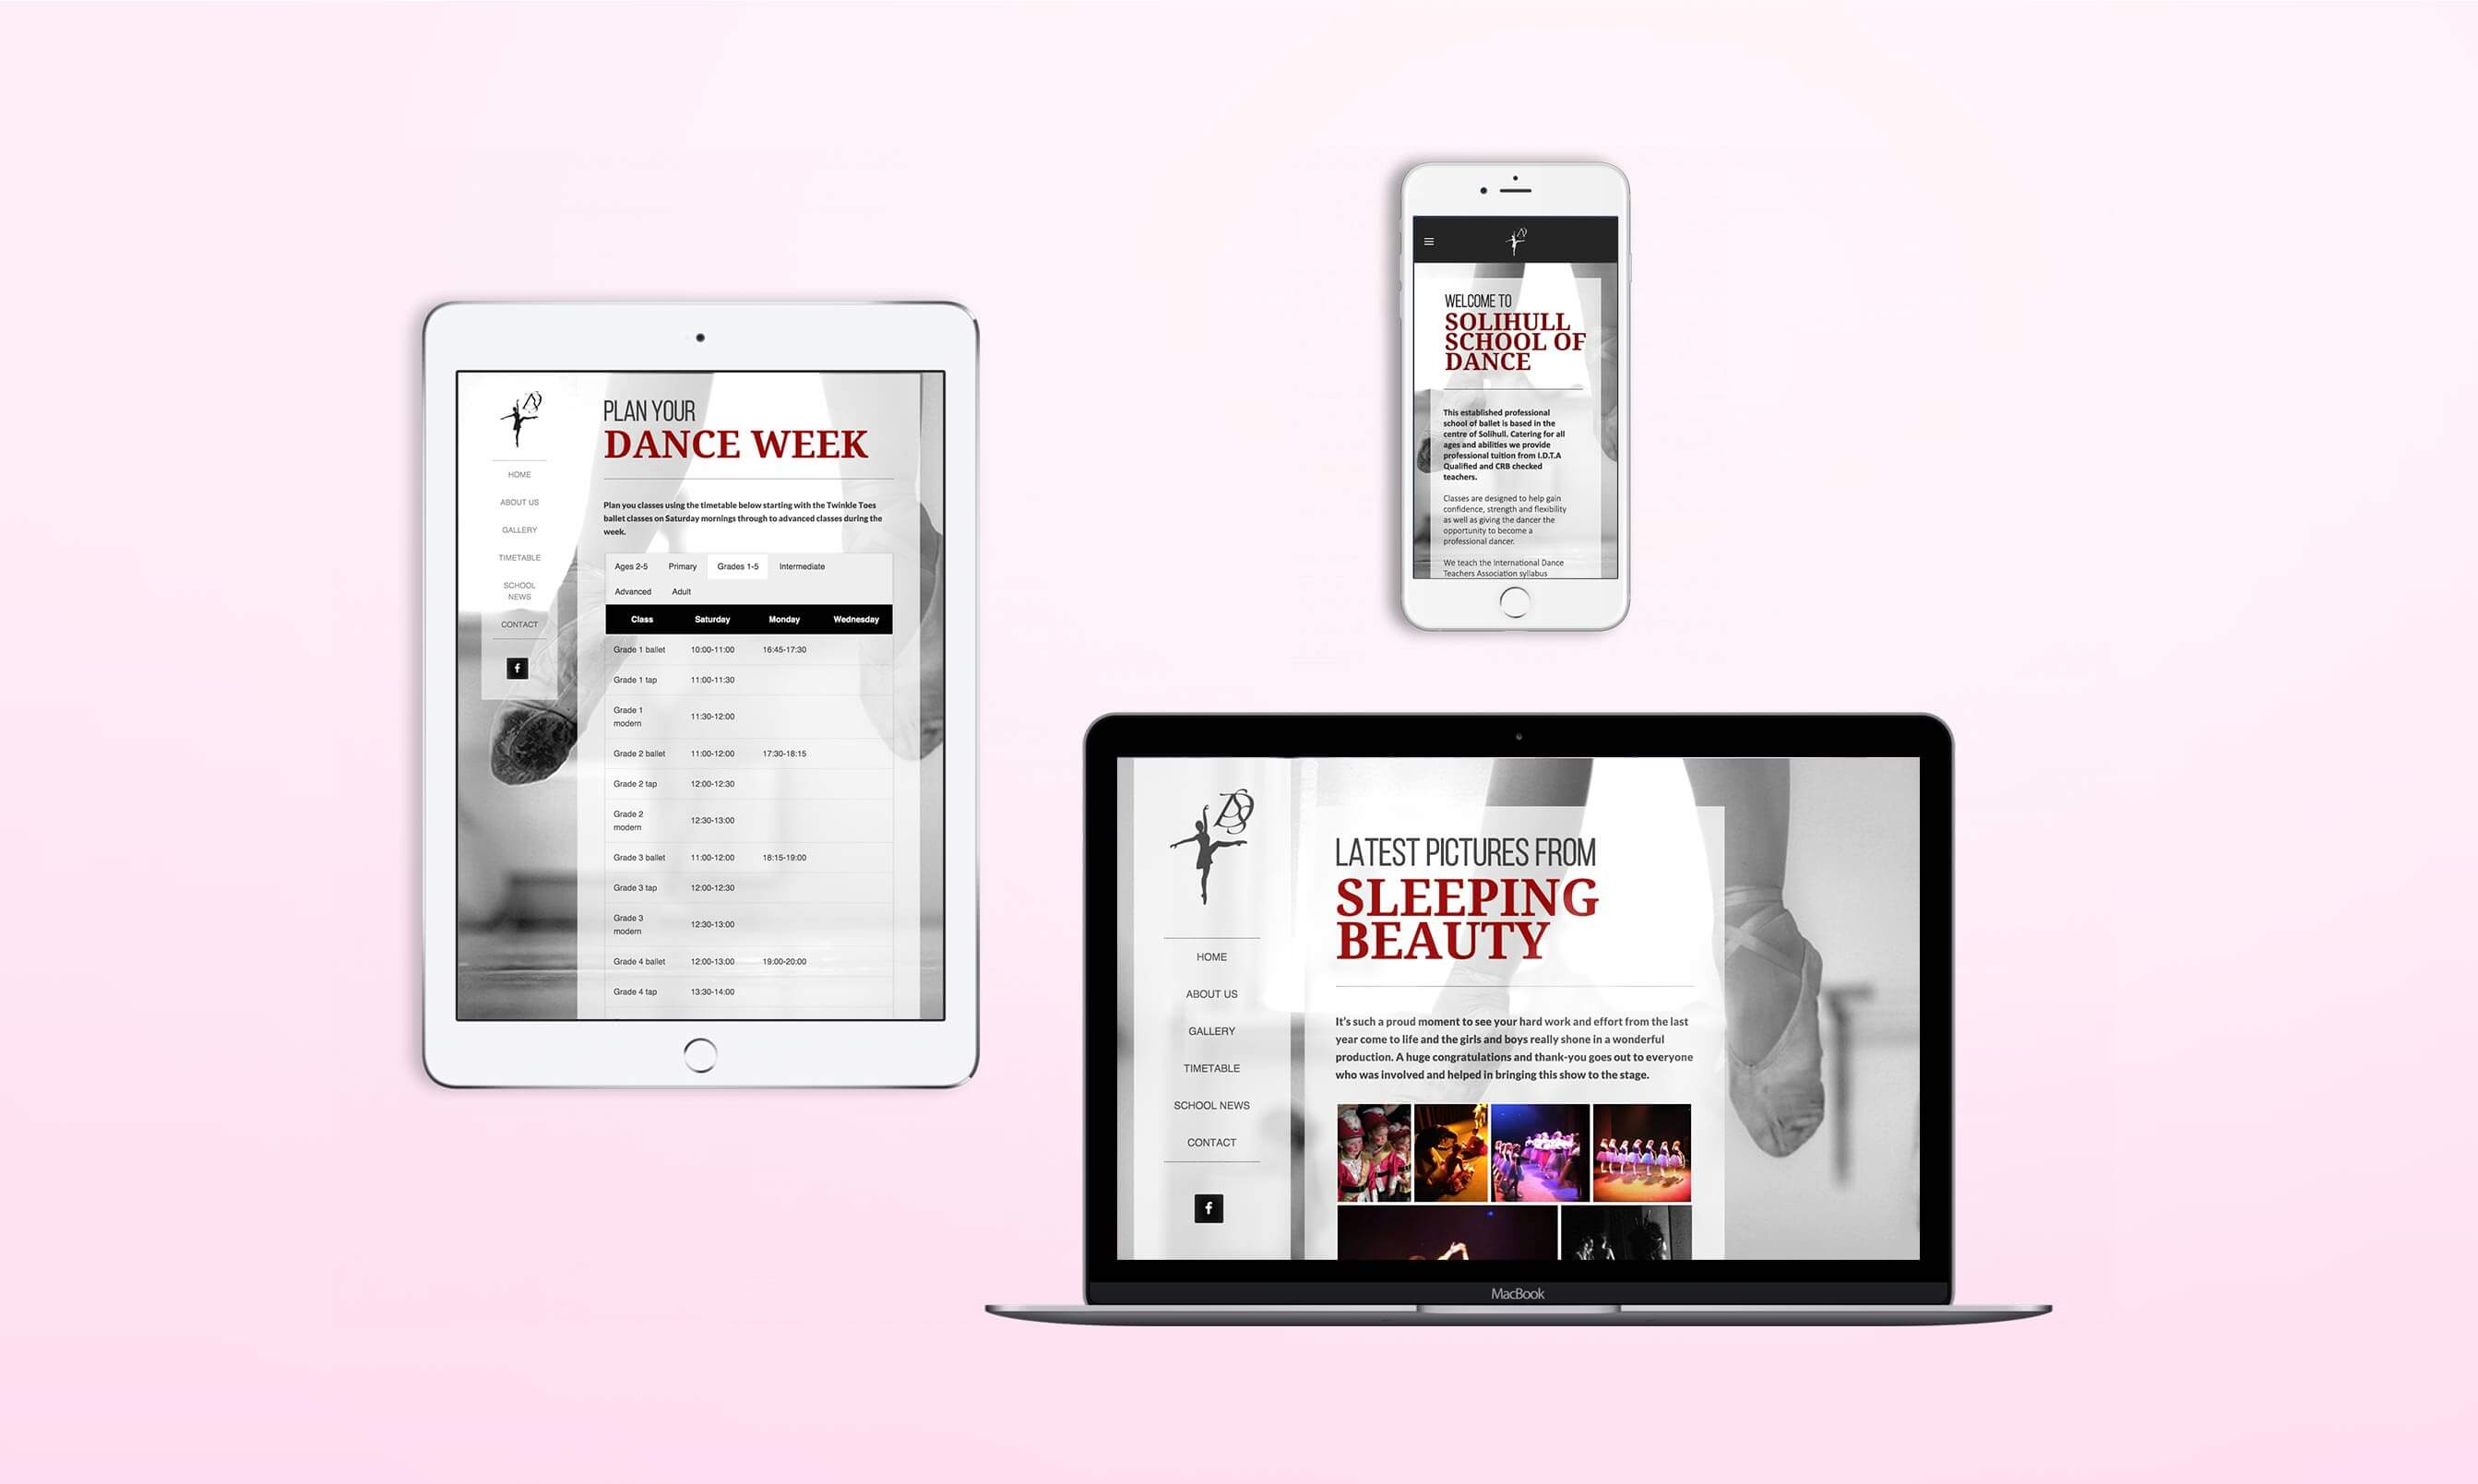 Responsive view of the website designed for Solihull School of Dance